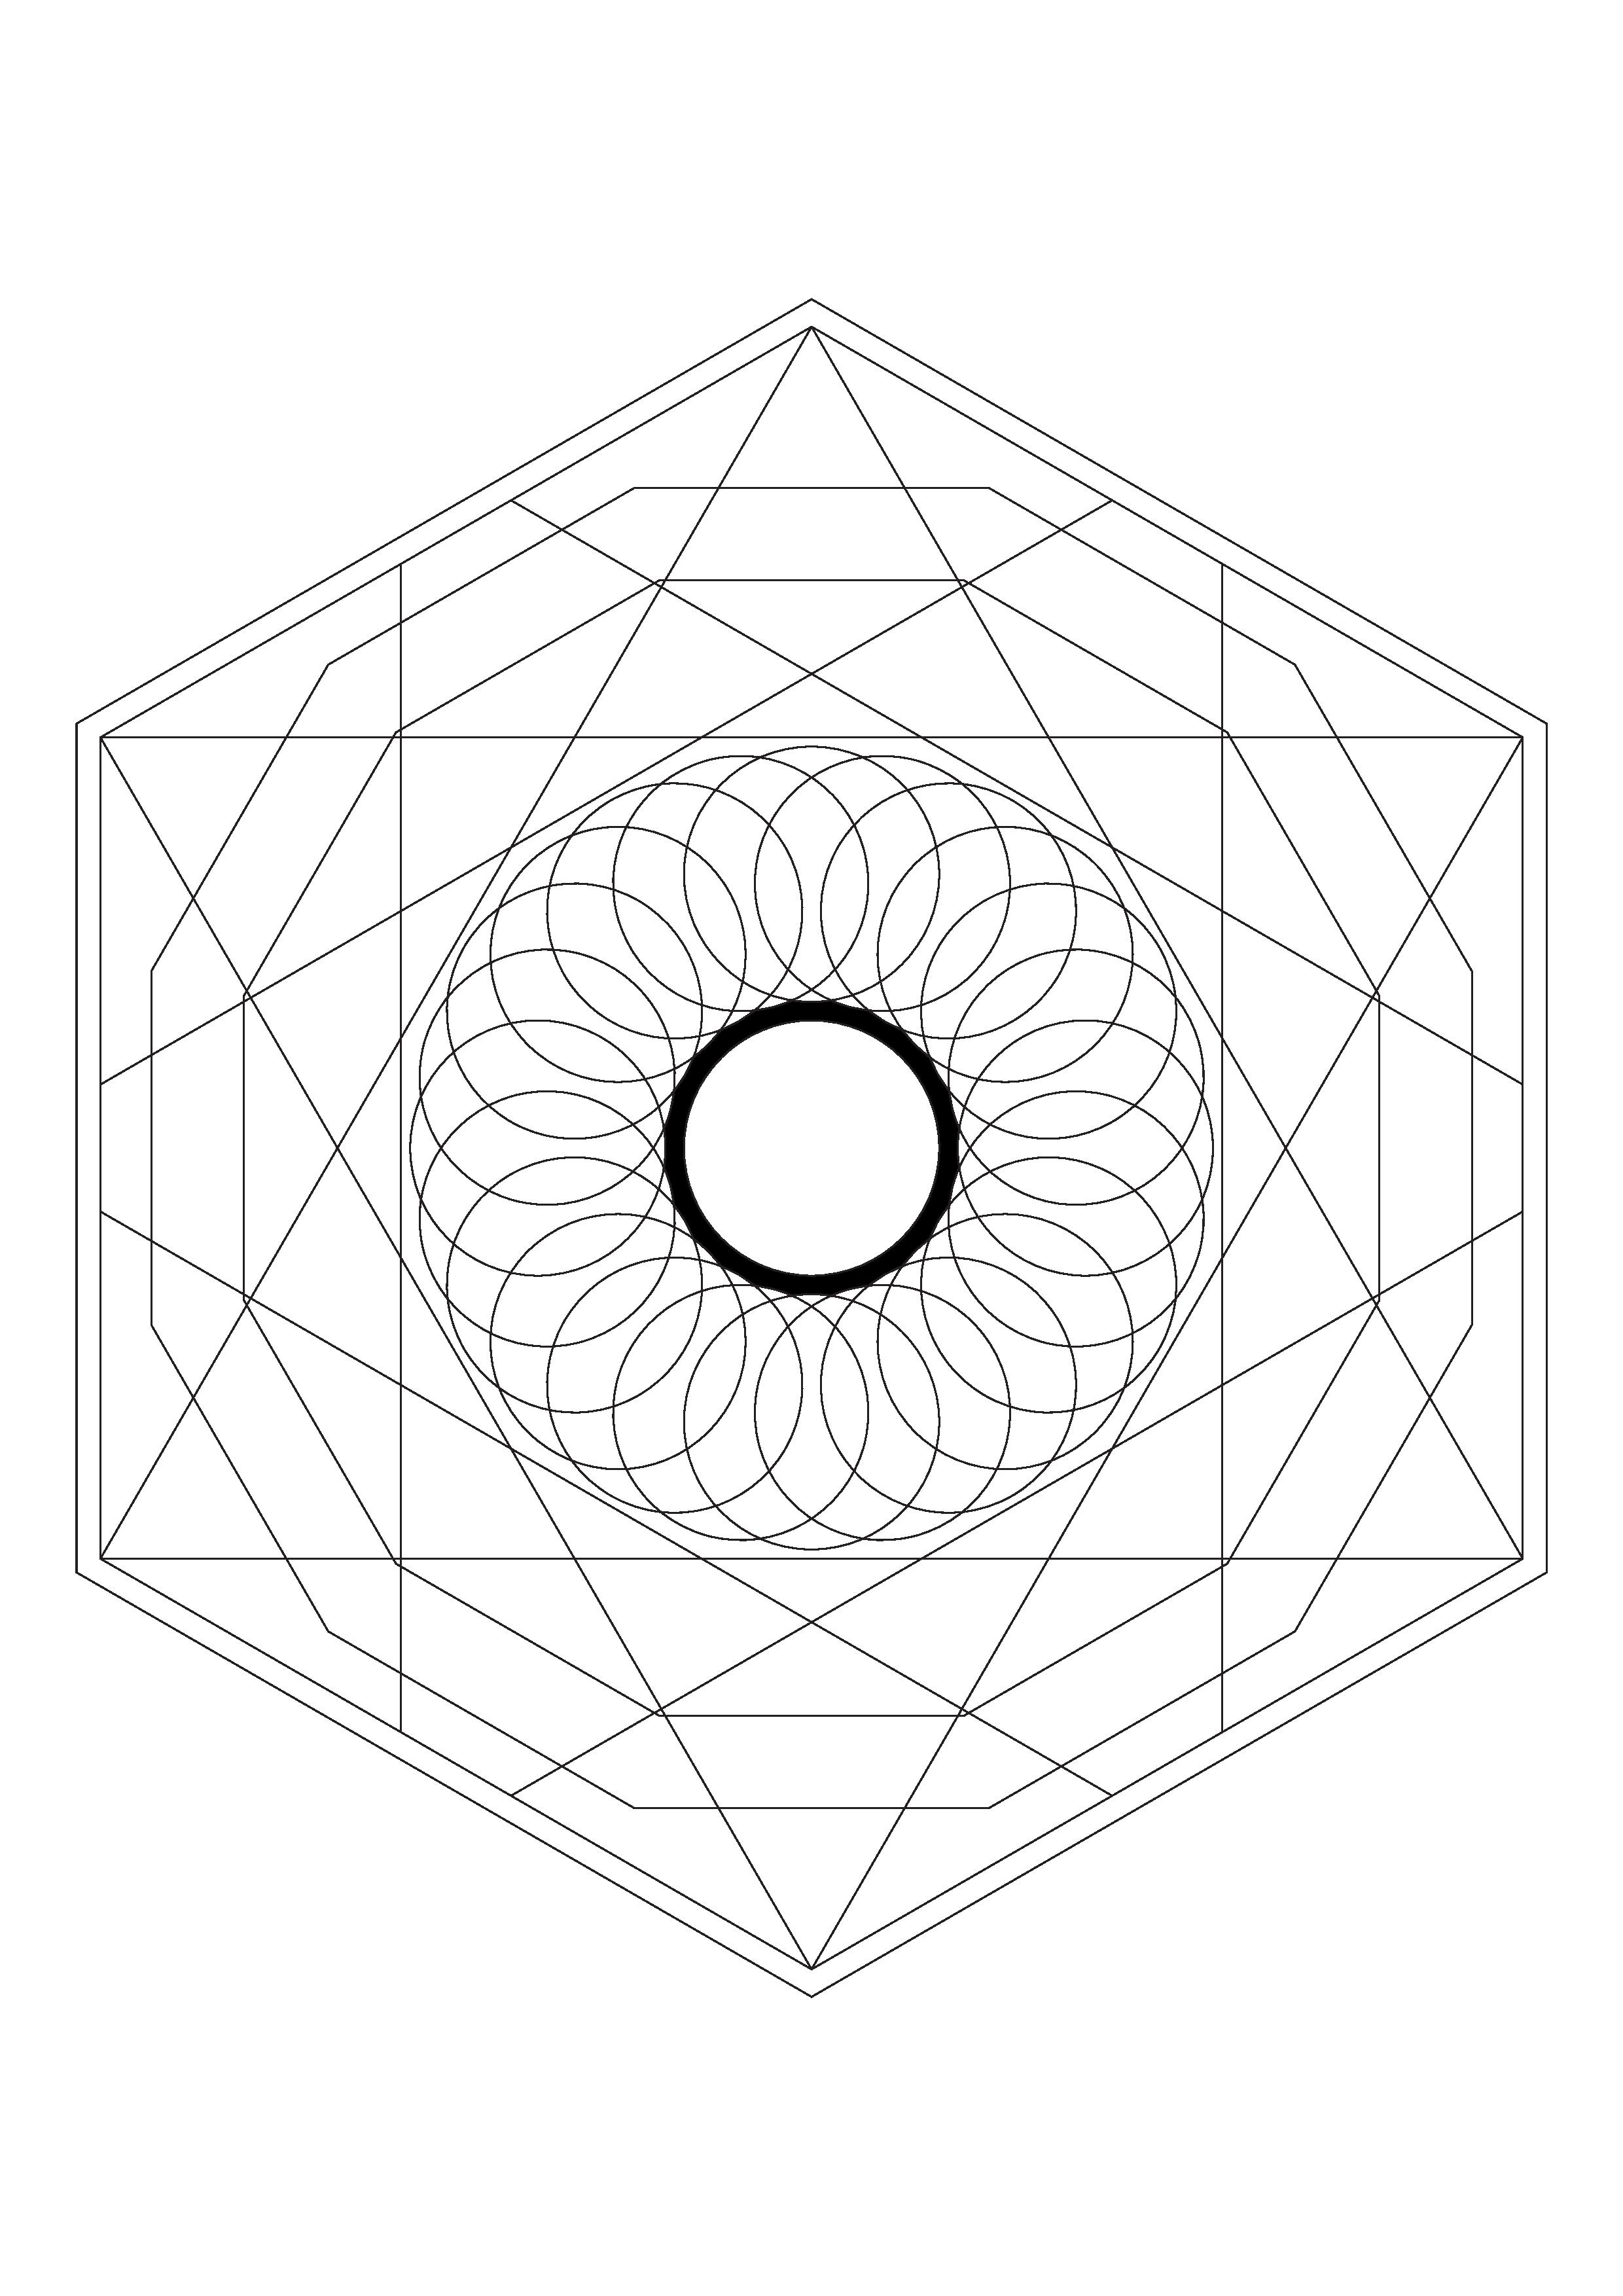 mandalas coloring pages these printable mandala and abstract coloring pages mandalas coloring pages